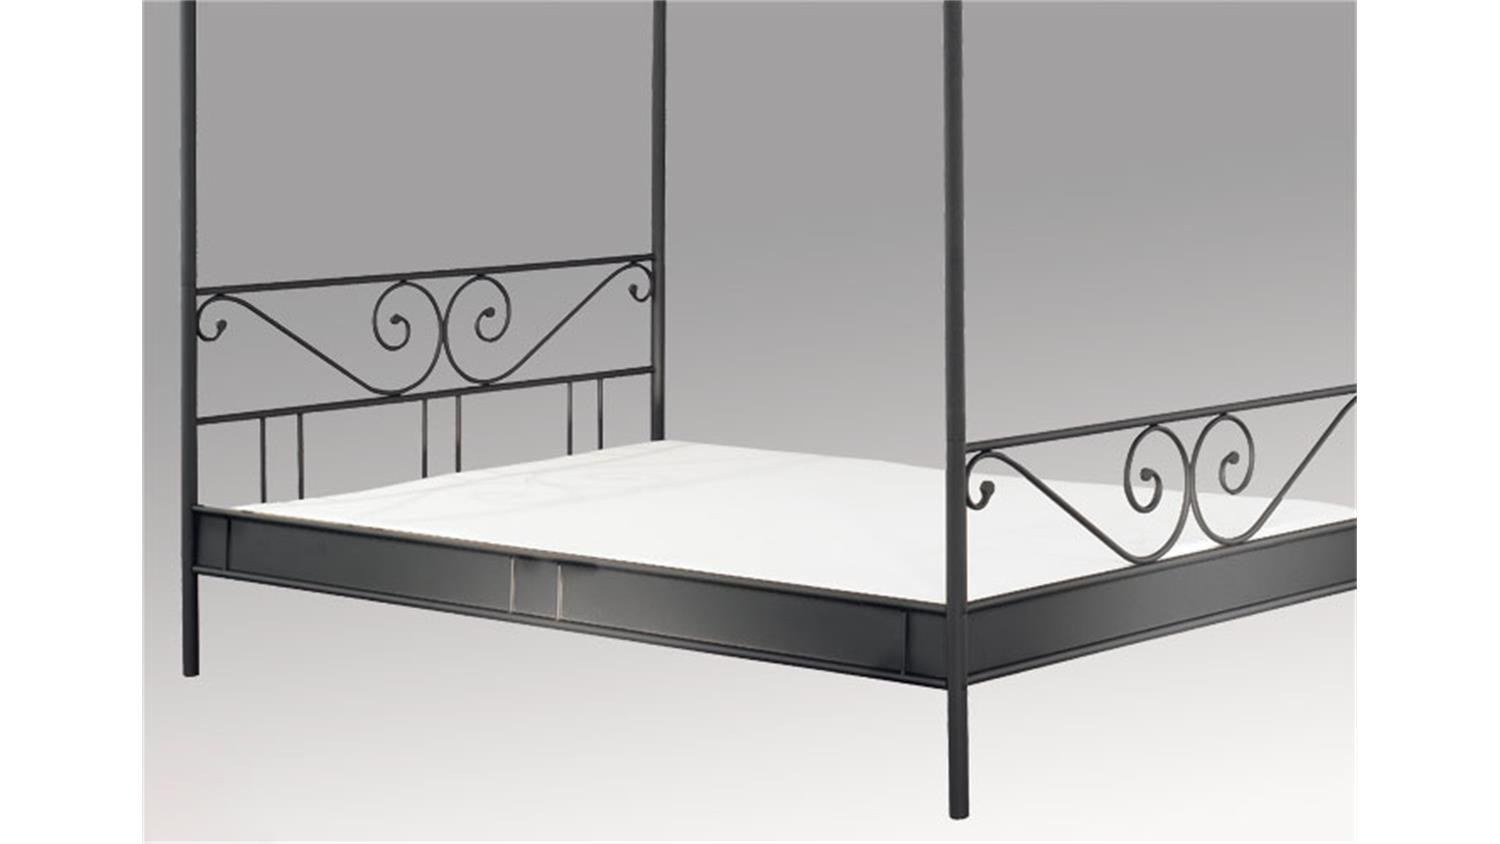 himmelbett metall trendy doppelbett himmelbett cm metall. Black Bedroom Furniture Sets. Home Design Ideas